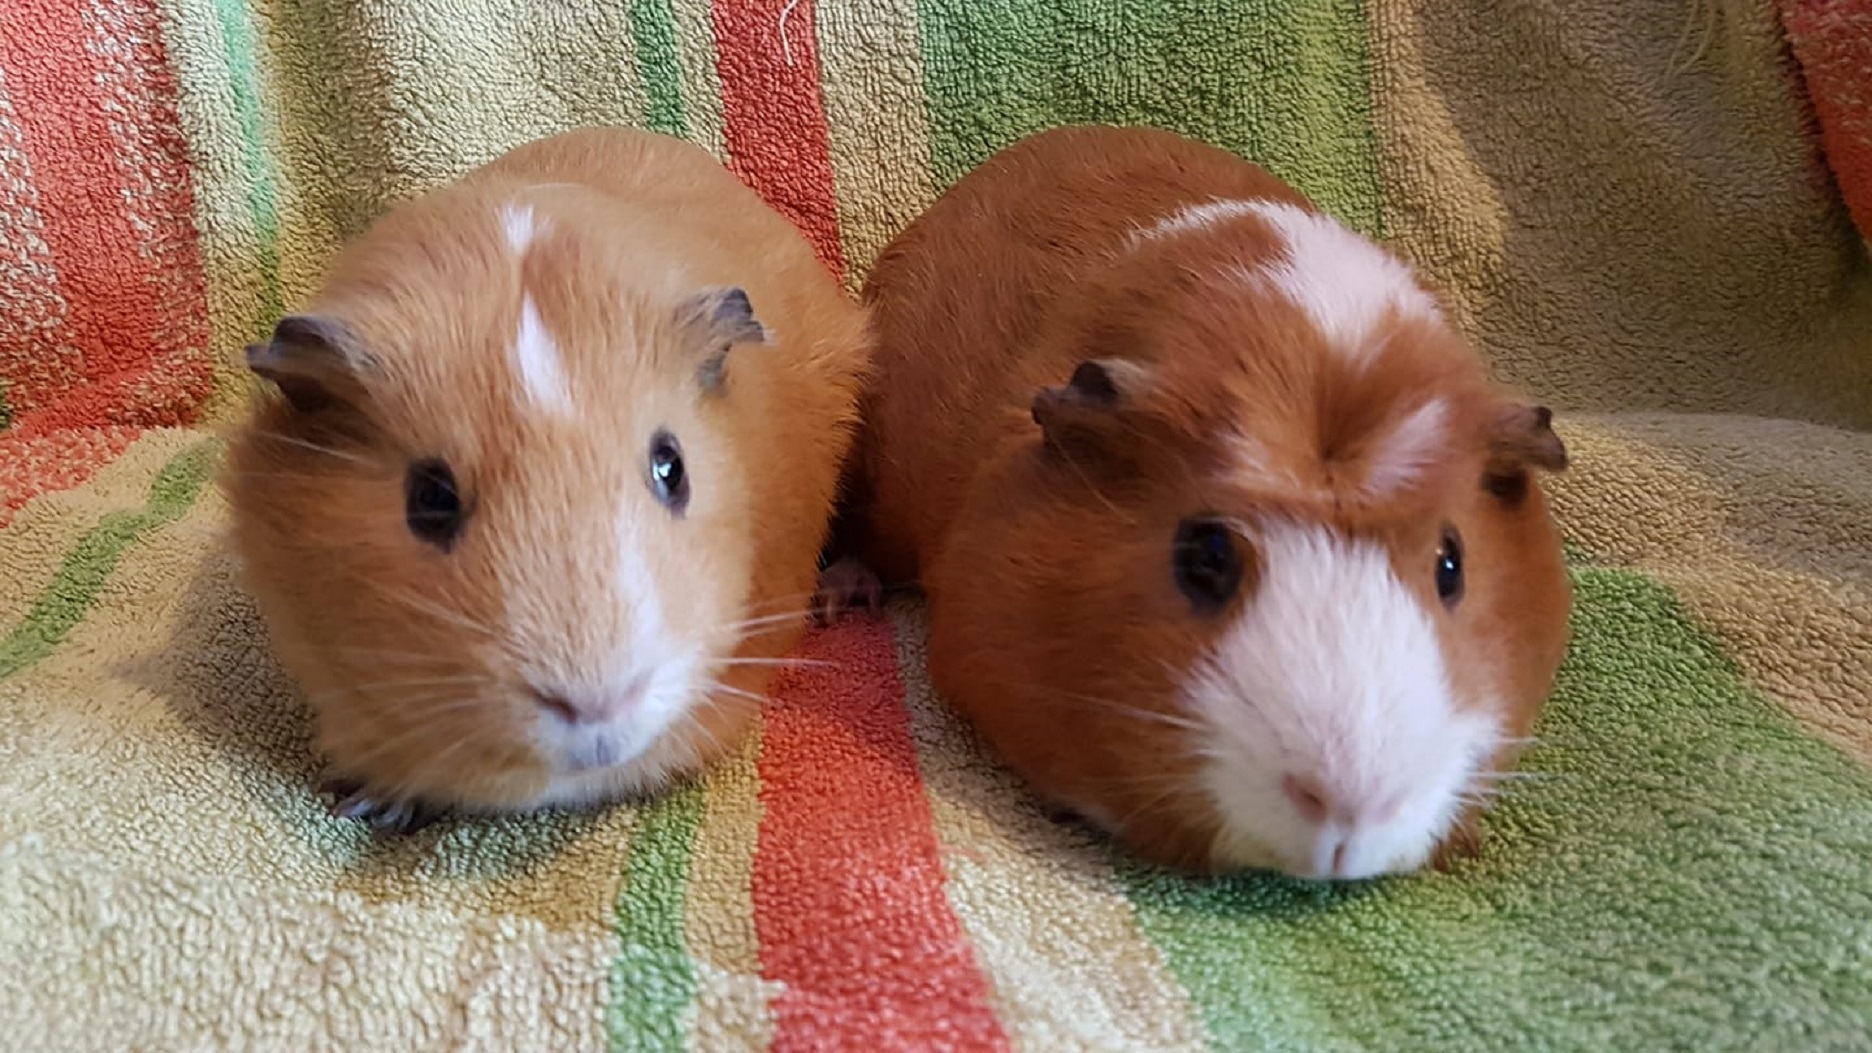 Blondie & Ginger (Steve & Danno) August 27th 2018